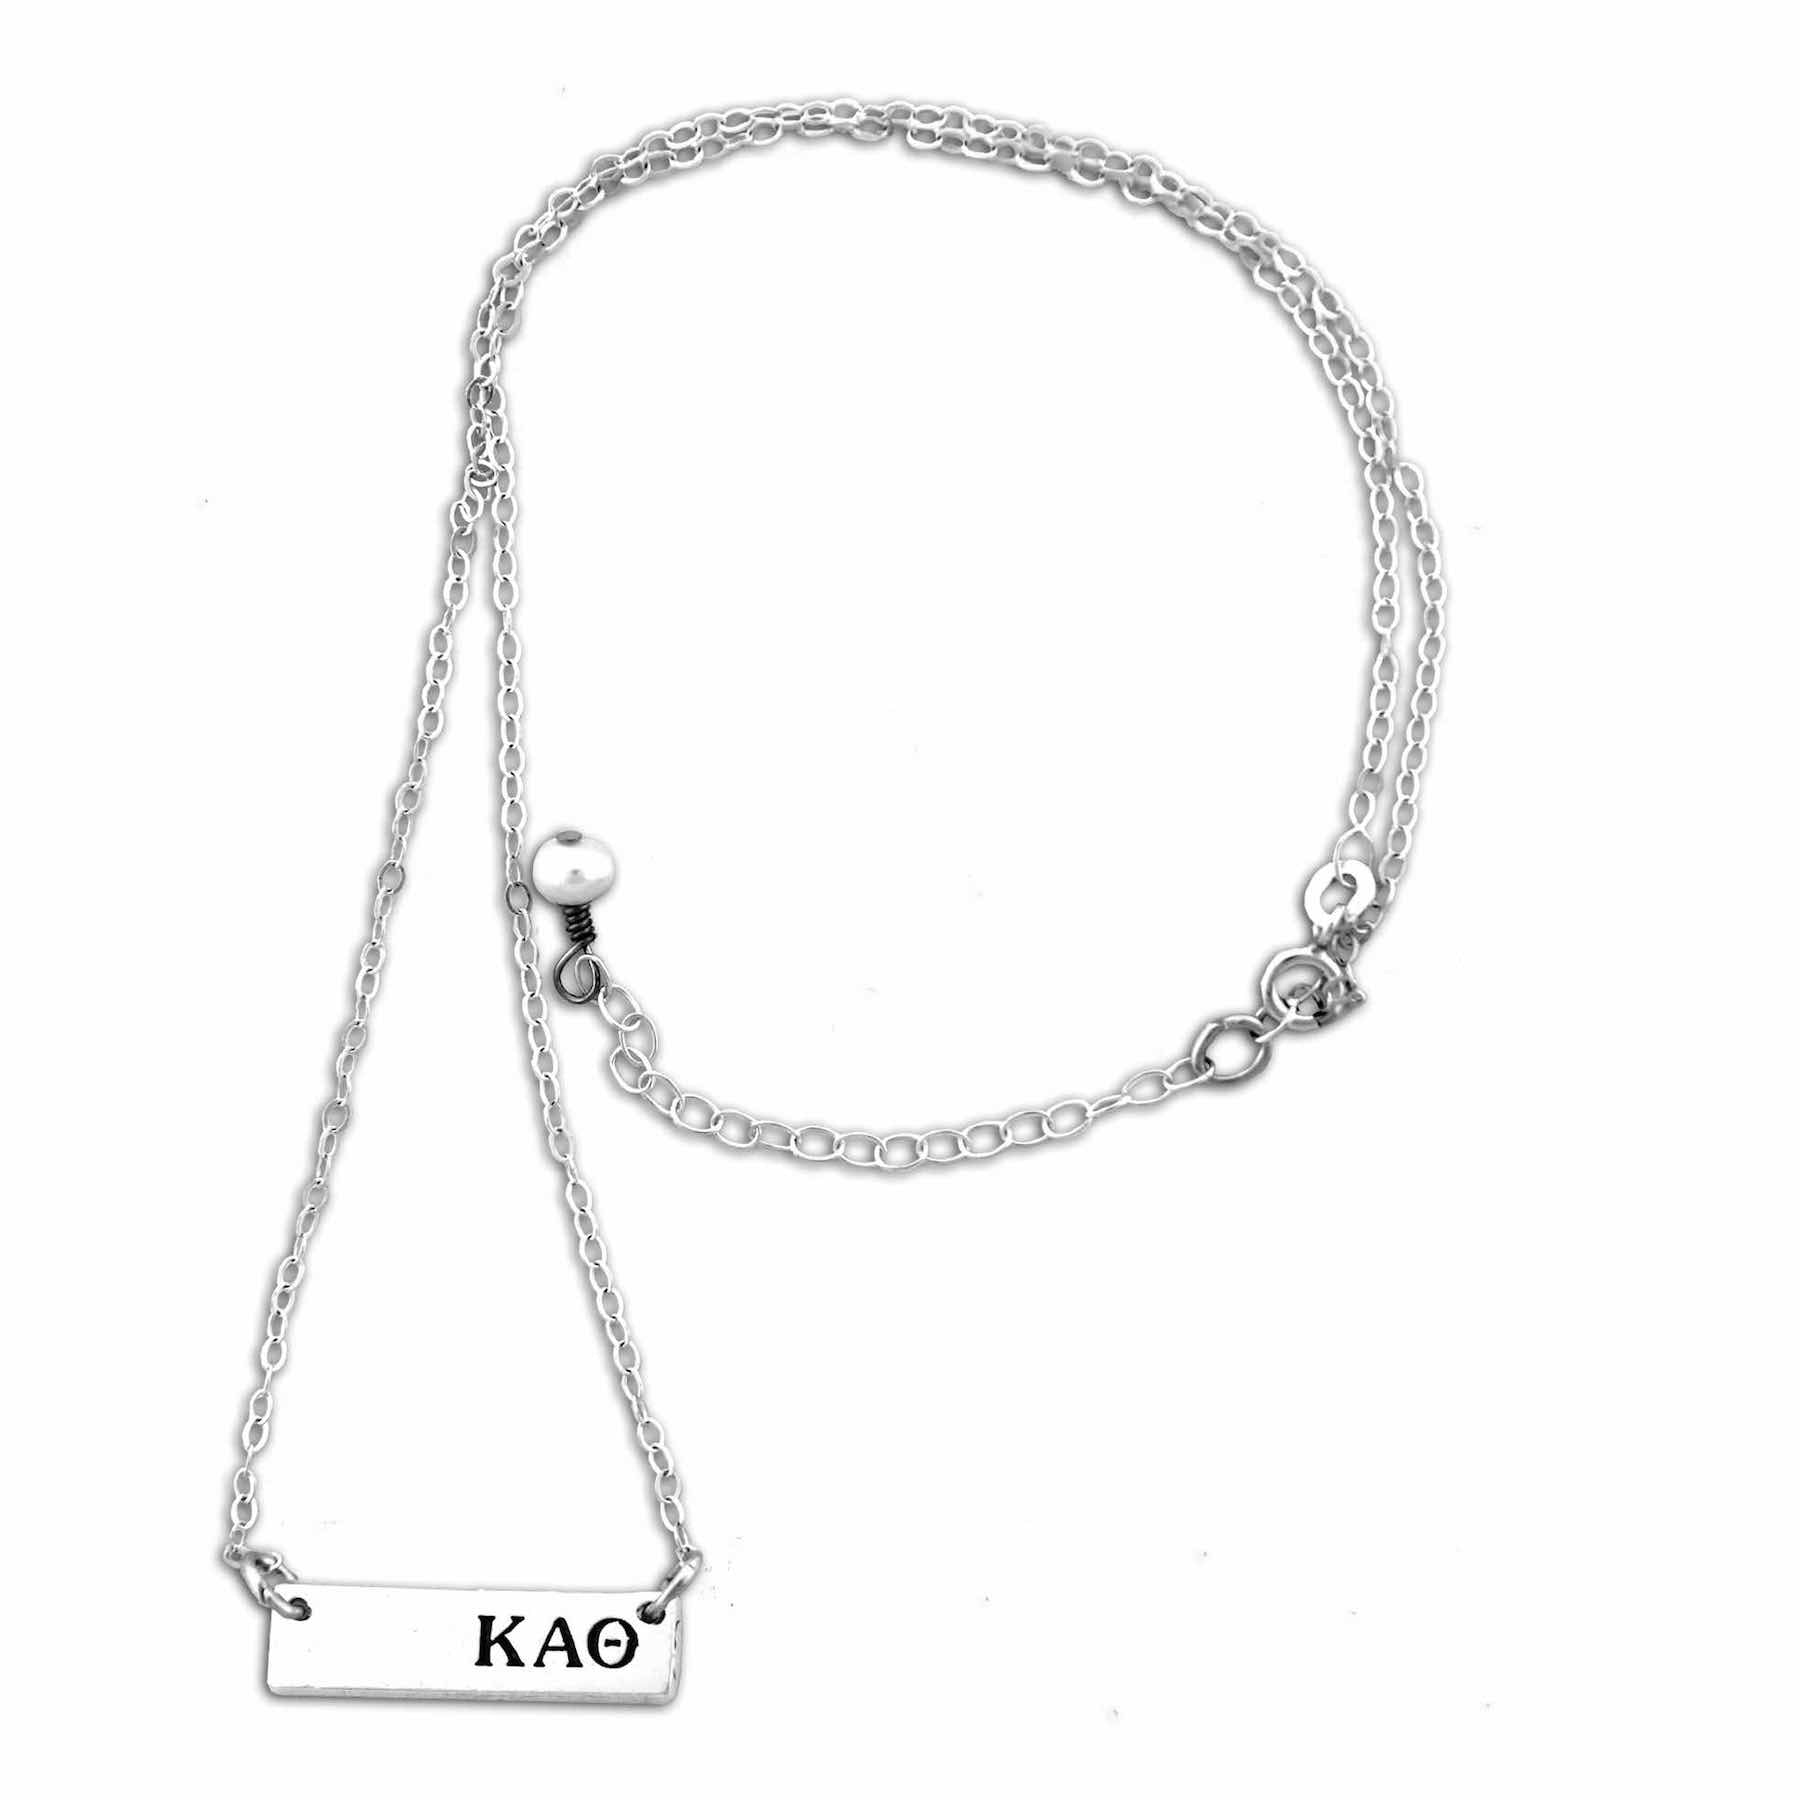 Kappa Alpha Theta Bar necklace with adjustable chain.